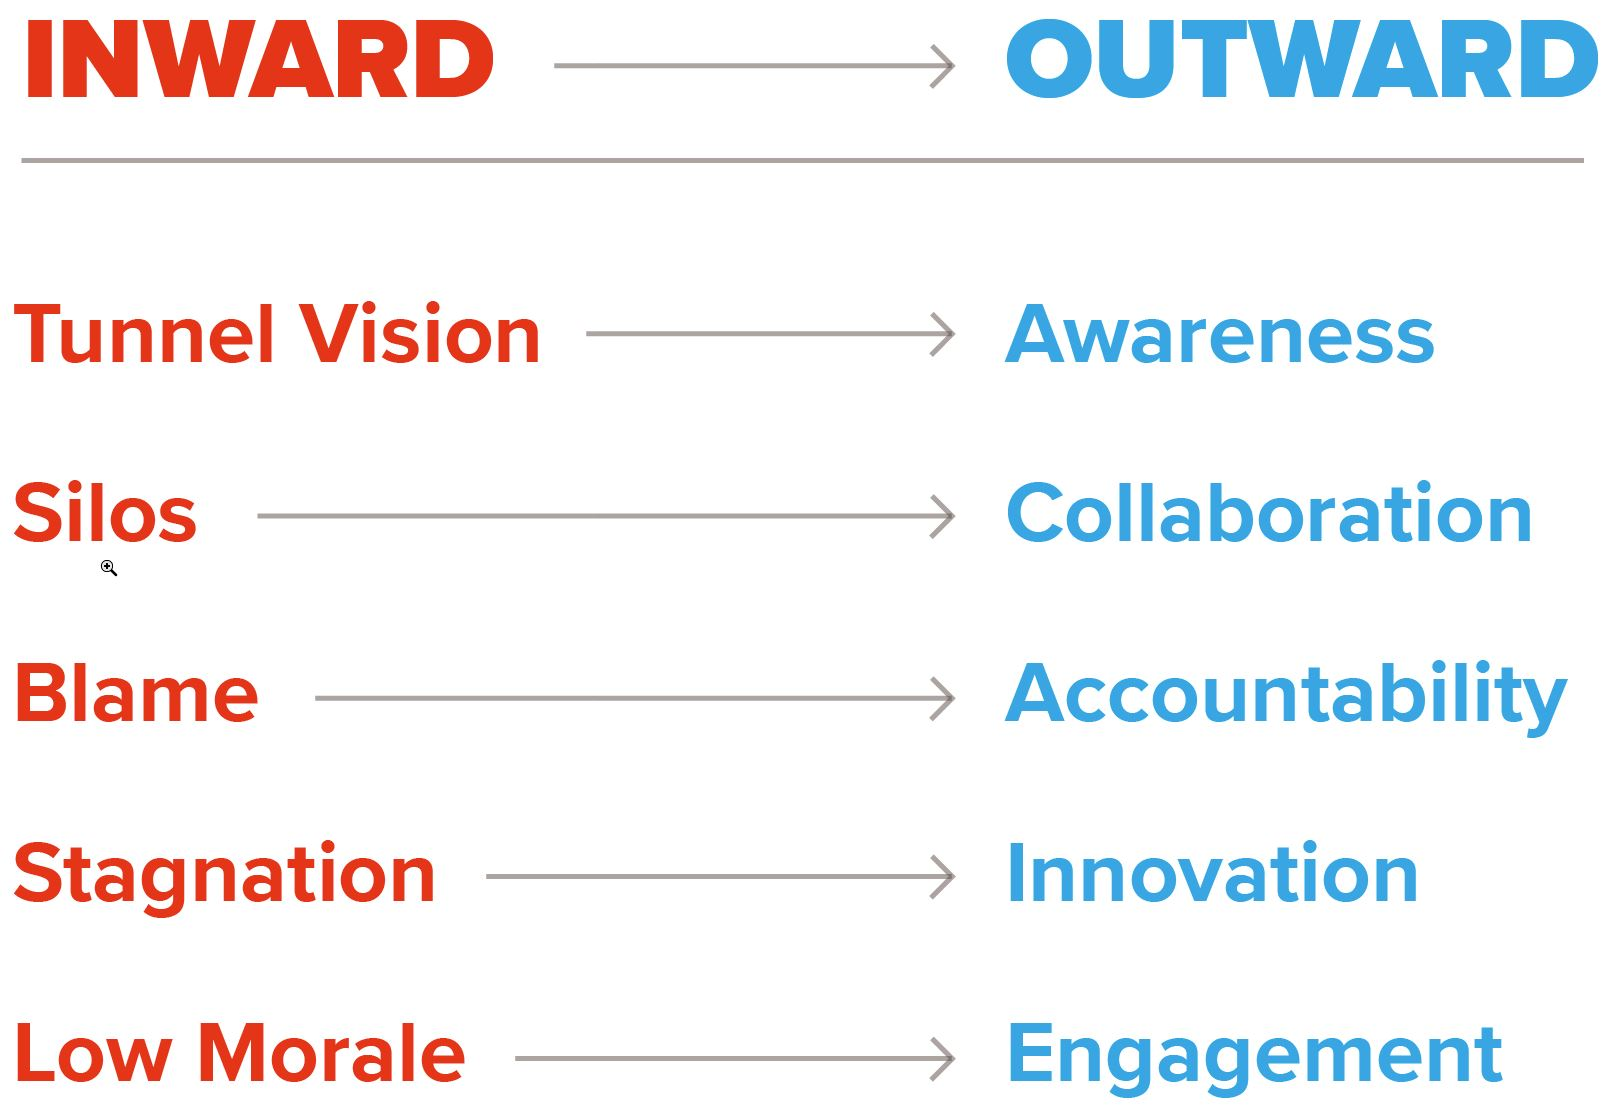 This image describes the different characteristics of inward and outward mindsets. When we move from an inward to an outward mindset, we move from tunnel vision to awareness; from silos to collaboration; from blame to accountability; from stagnation to innovation; and from low morale to engagement.